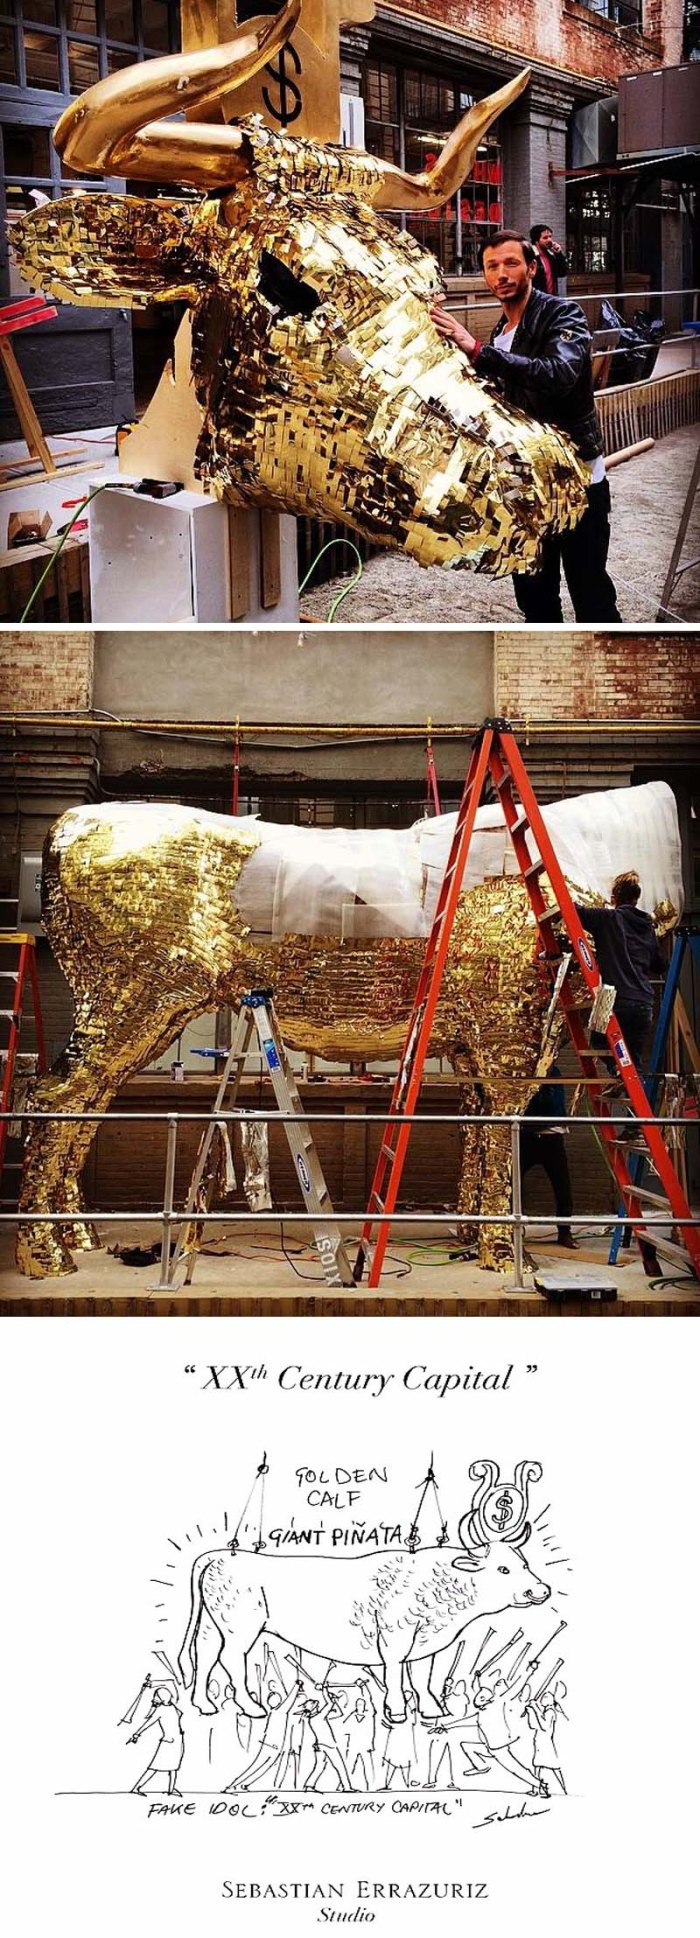 Cash Cow pinata by sebastian errazuriz, golden calf filled with 1000 dollars for NYCxDesign Festival, Industry City, 2014 Wanted Design